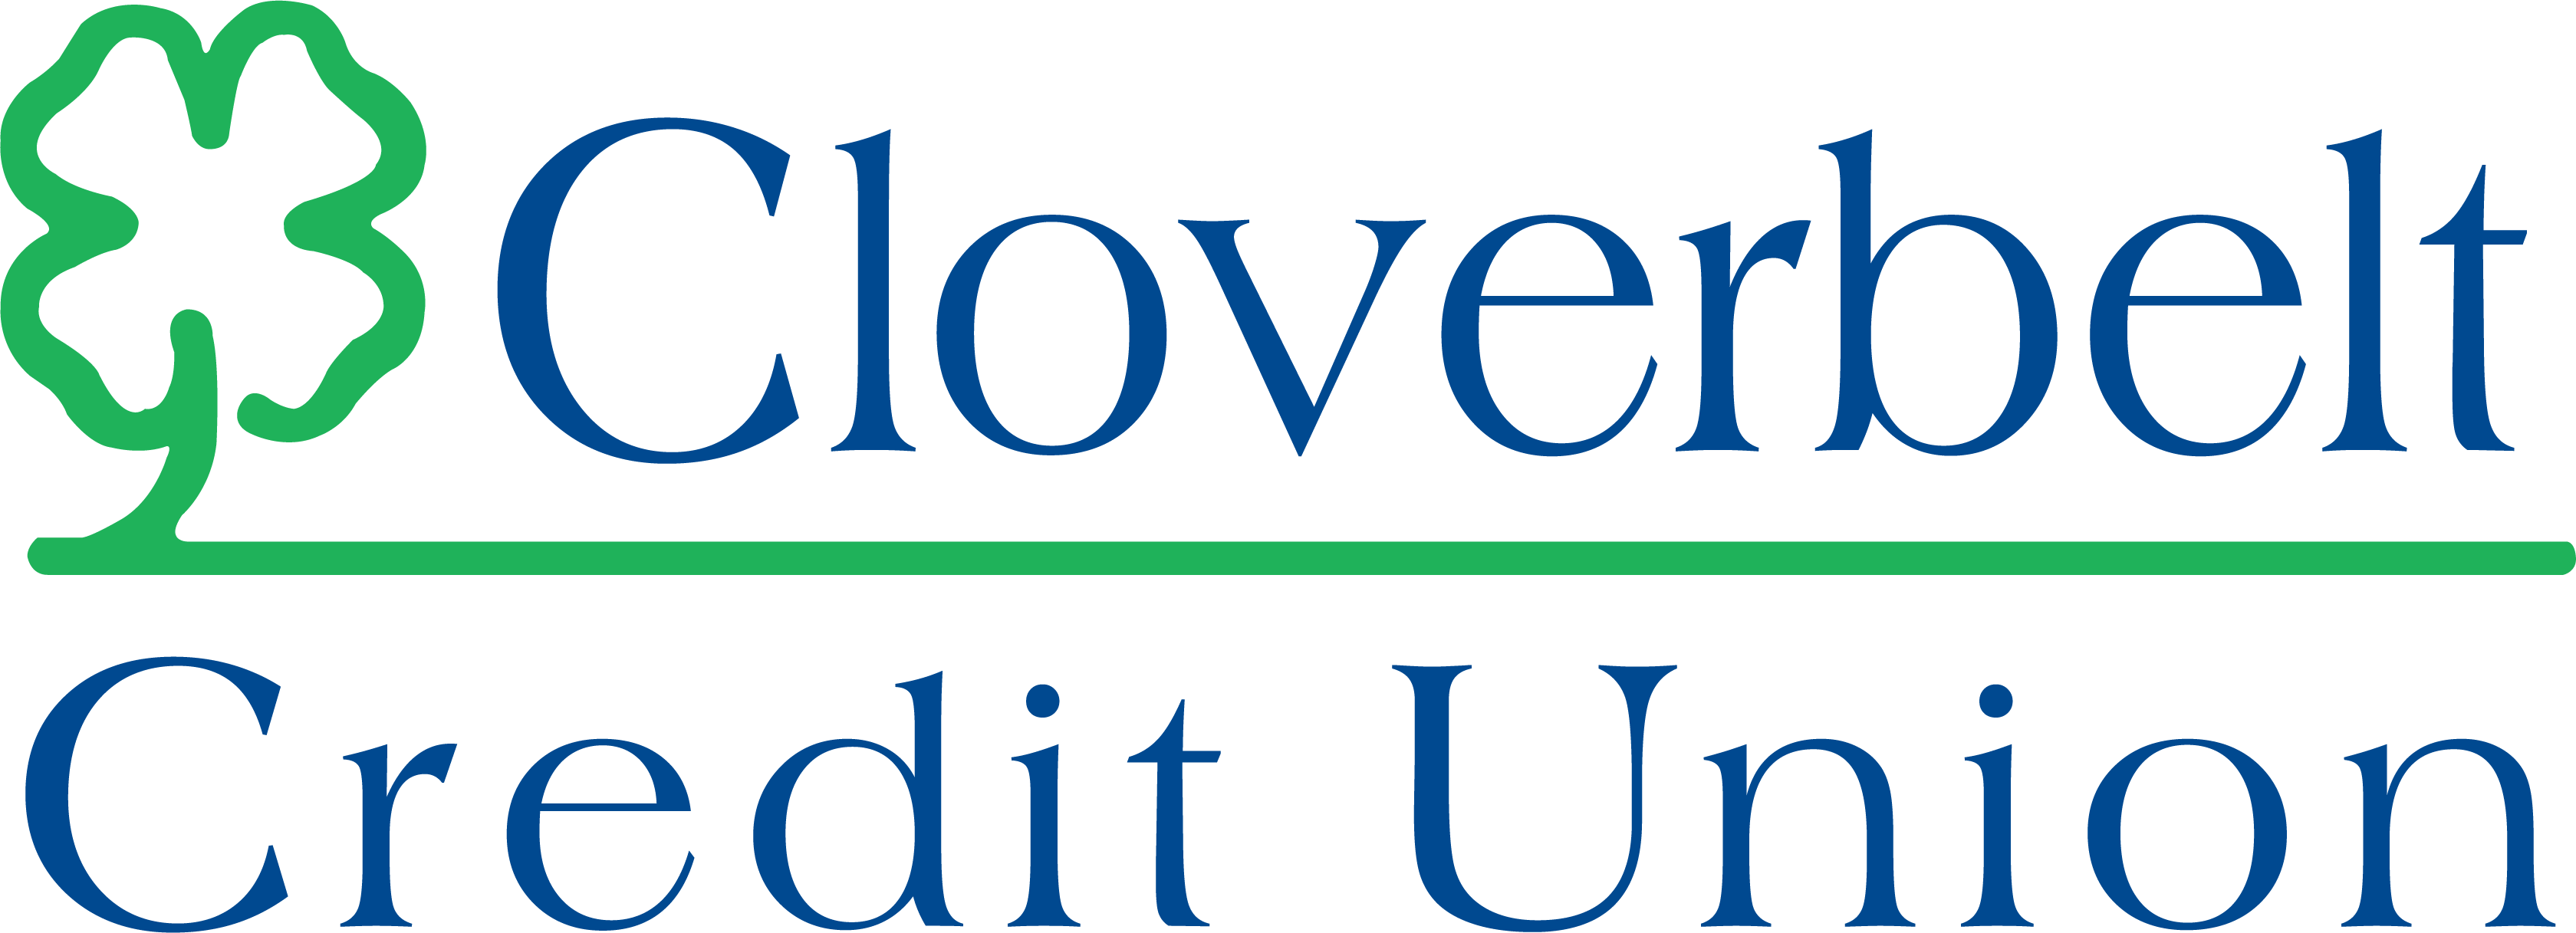 Cloverbelt Credit Union_Logo